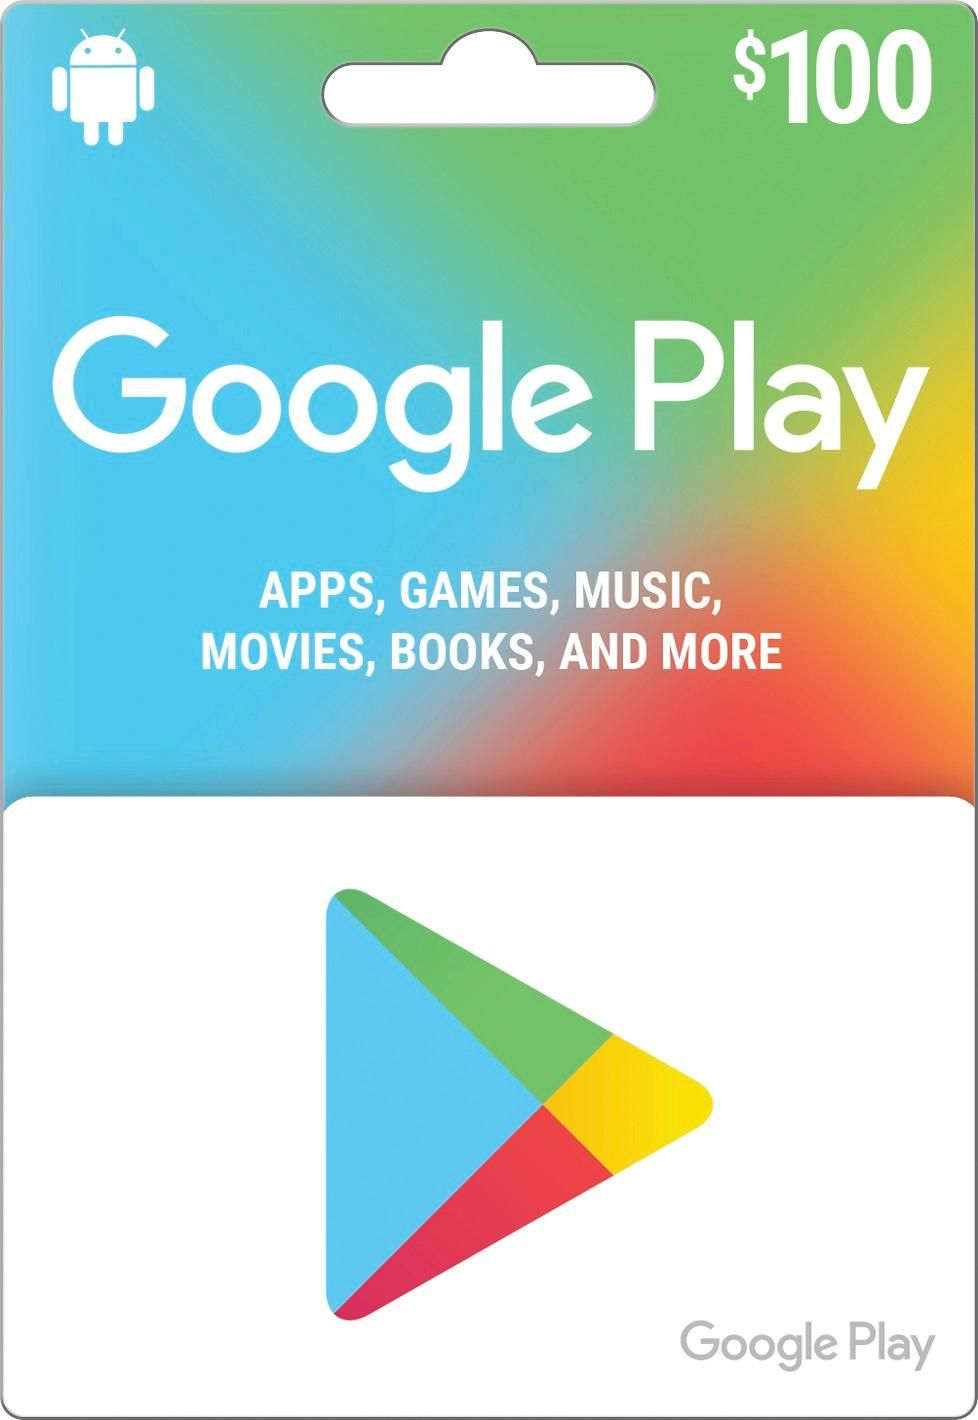 Google Play 100 Gift Card Google Play 2017 100 Best Buy Google Play Gift Card Google Play Codes Prepaid Gift Cards